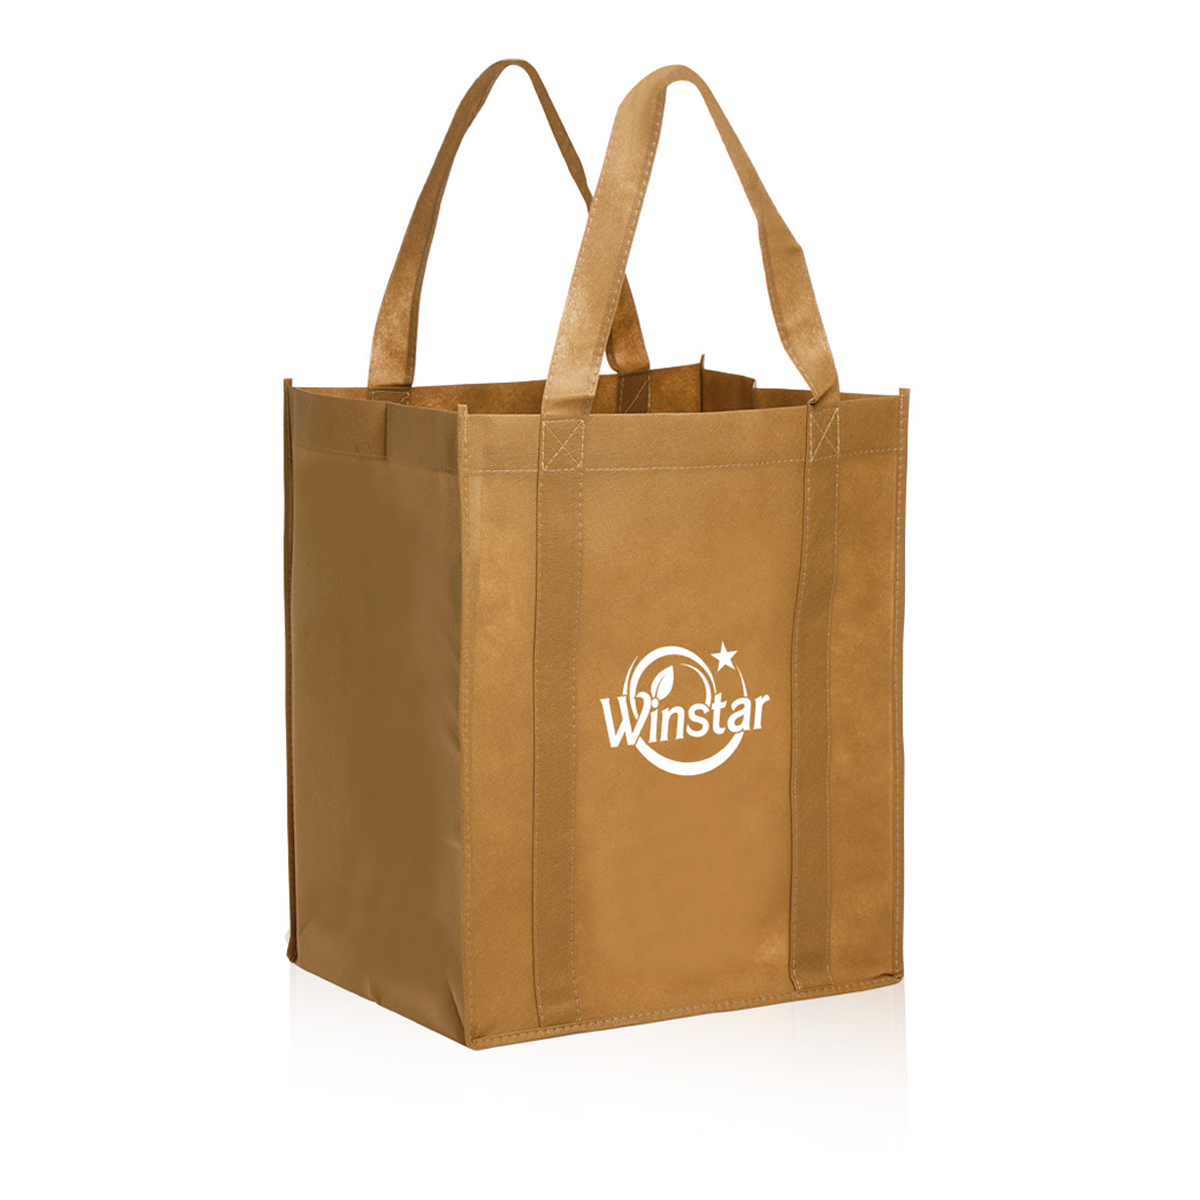 Reusable Grocery Tote Bag 13 X 15 X 10 Mines Press